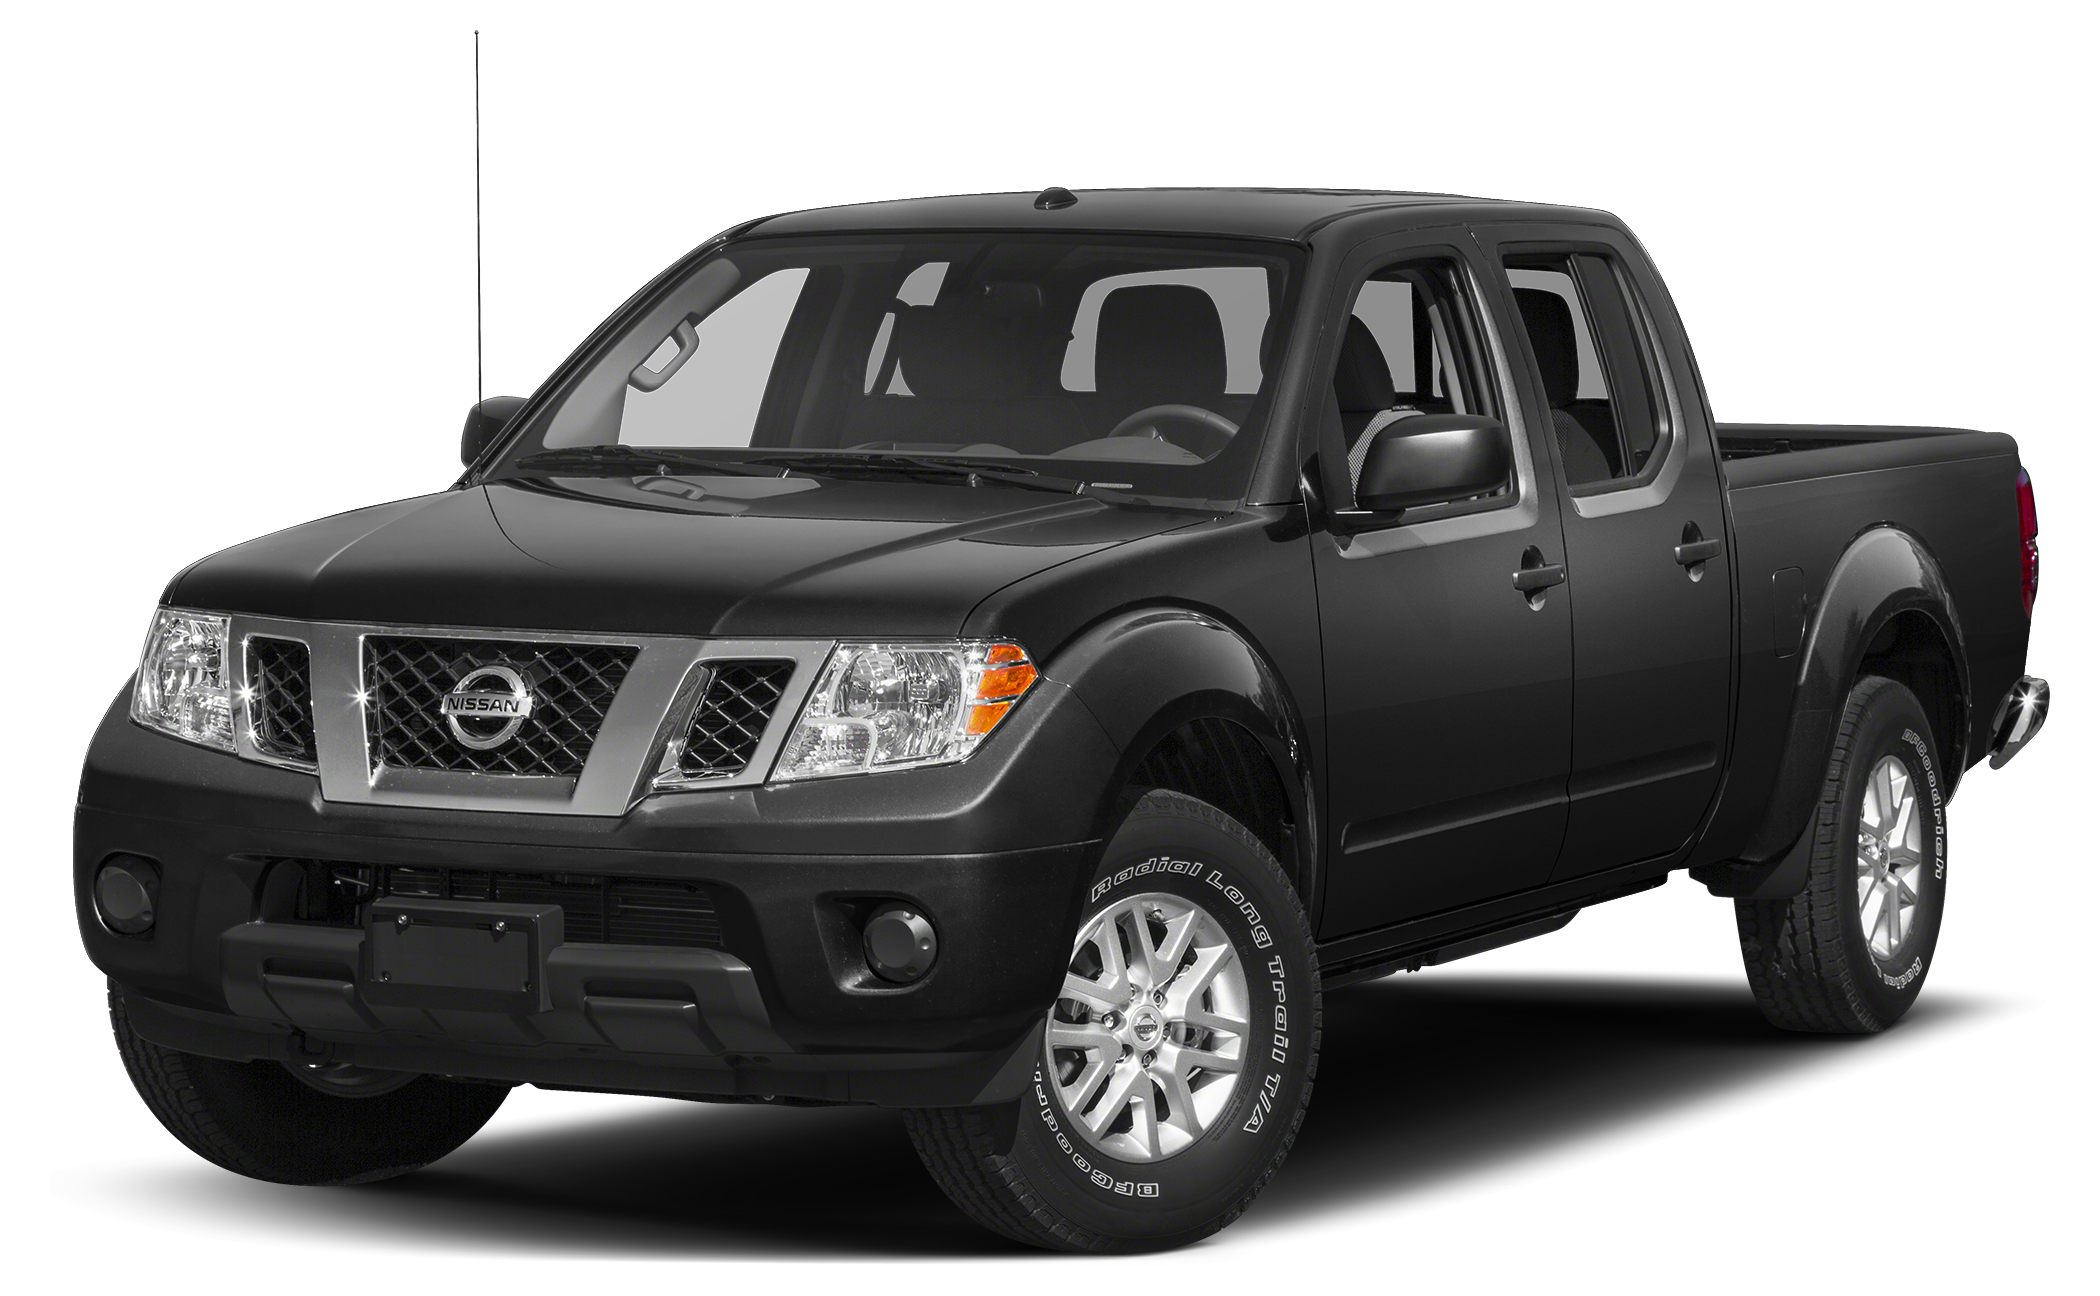 2015 Nissan Frontier SV Outstanding design defines the 2015 Nissan Frontier A practical vehicle t